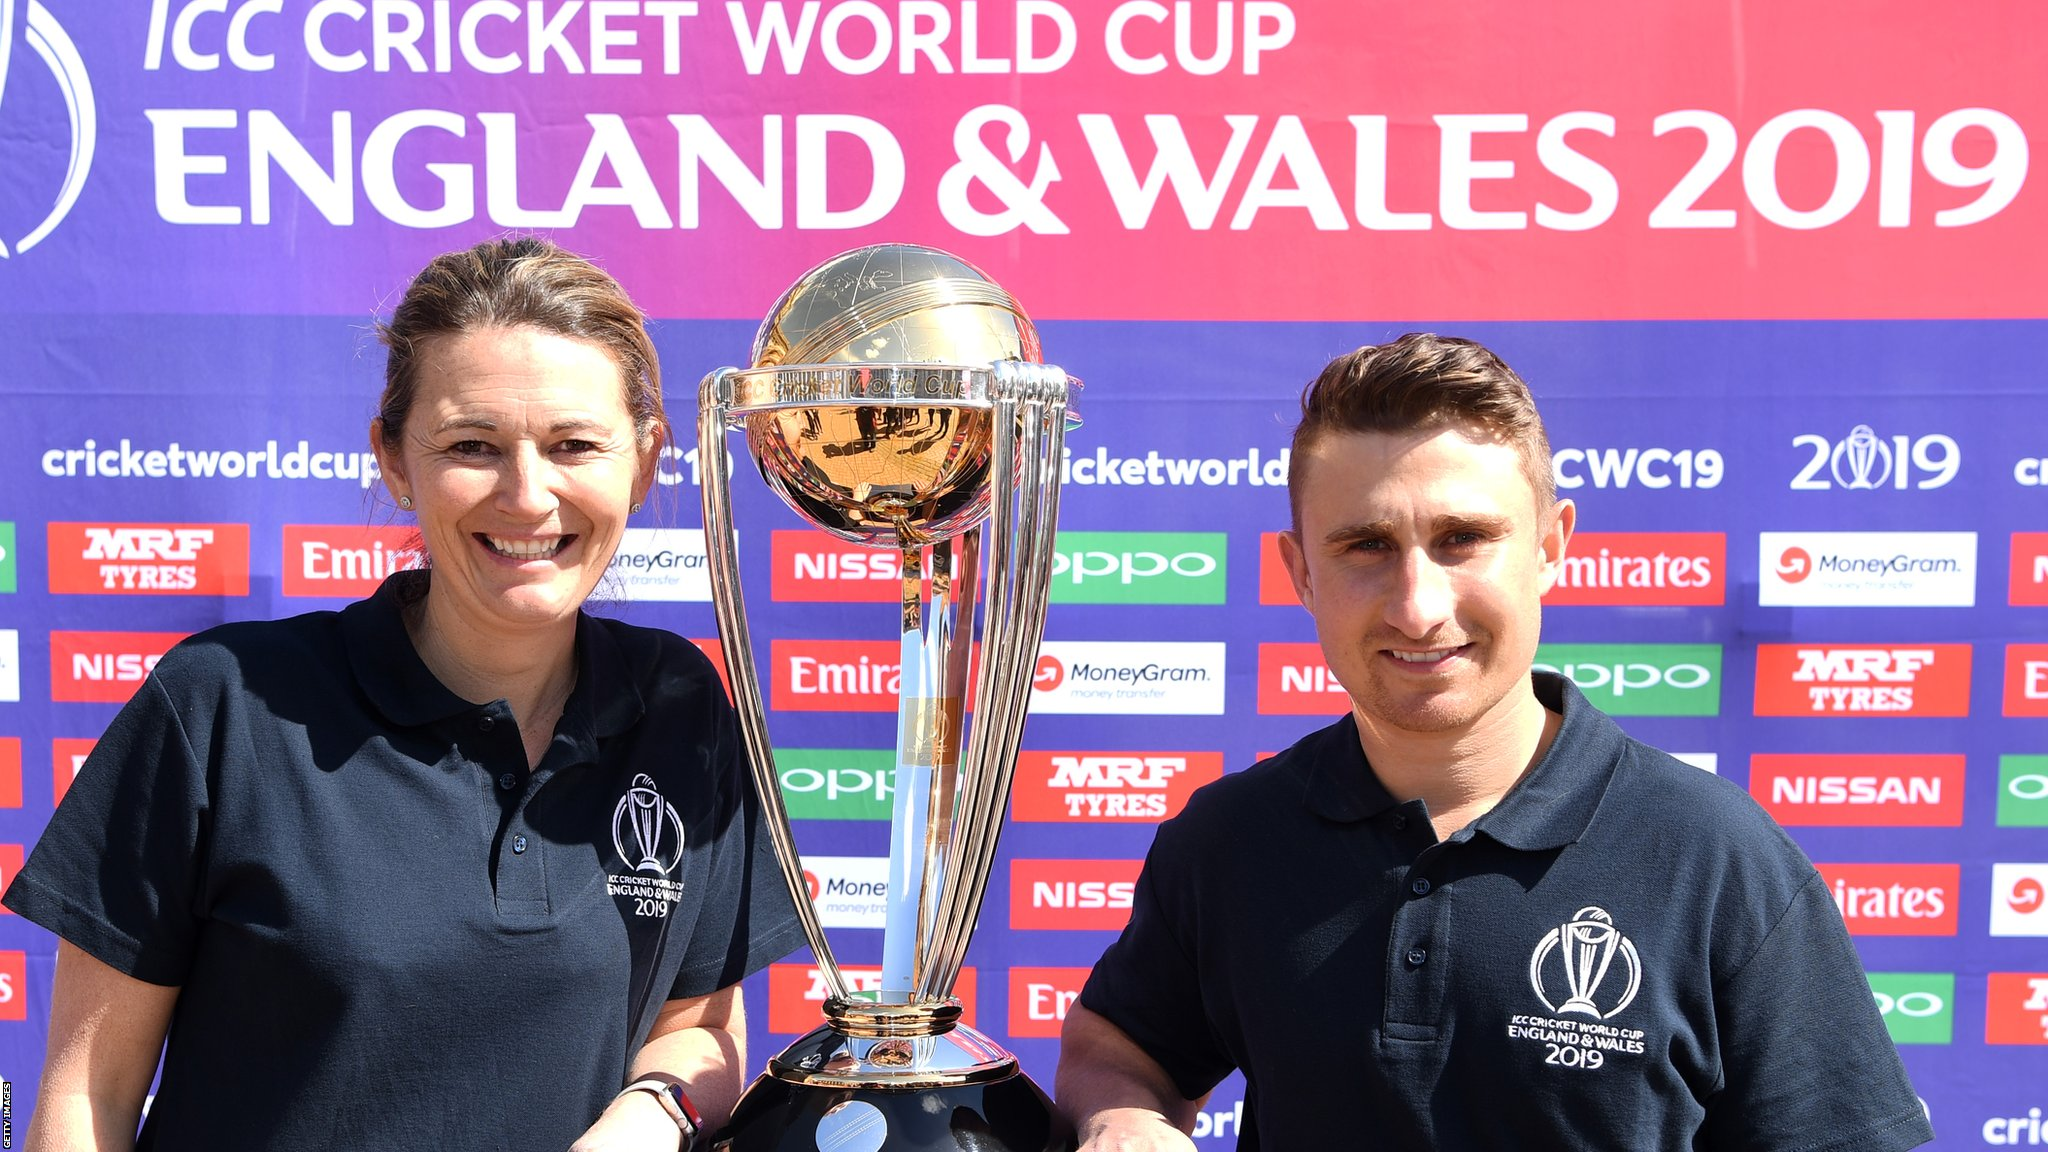 ICC Cricket World Cup: BBC secures commentary rights